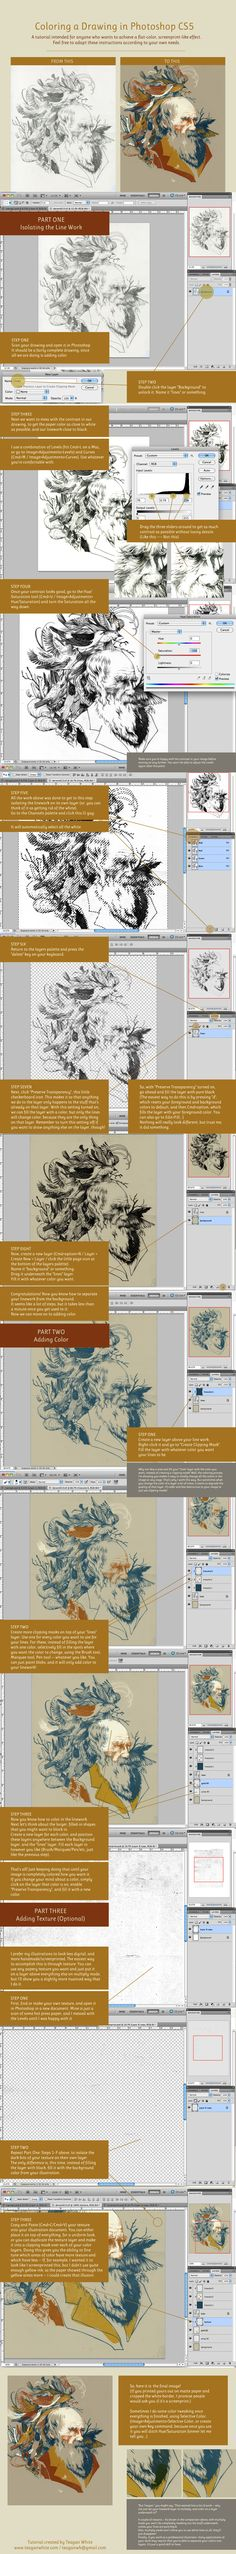 coloring_a_drawing_in_photoshop_cs5_by_lostsoulx44-d4nhyl7.jpg (1000×10826)